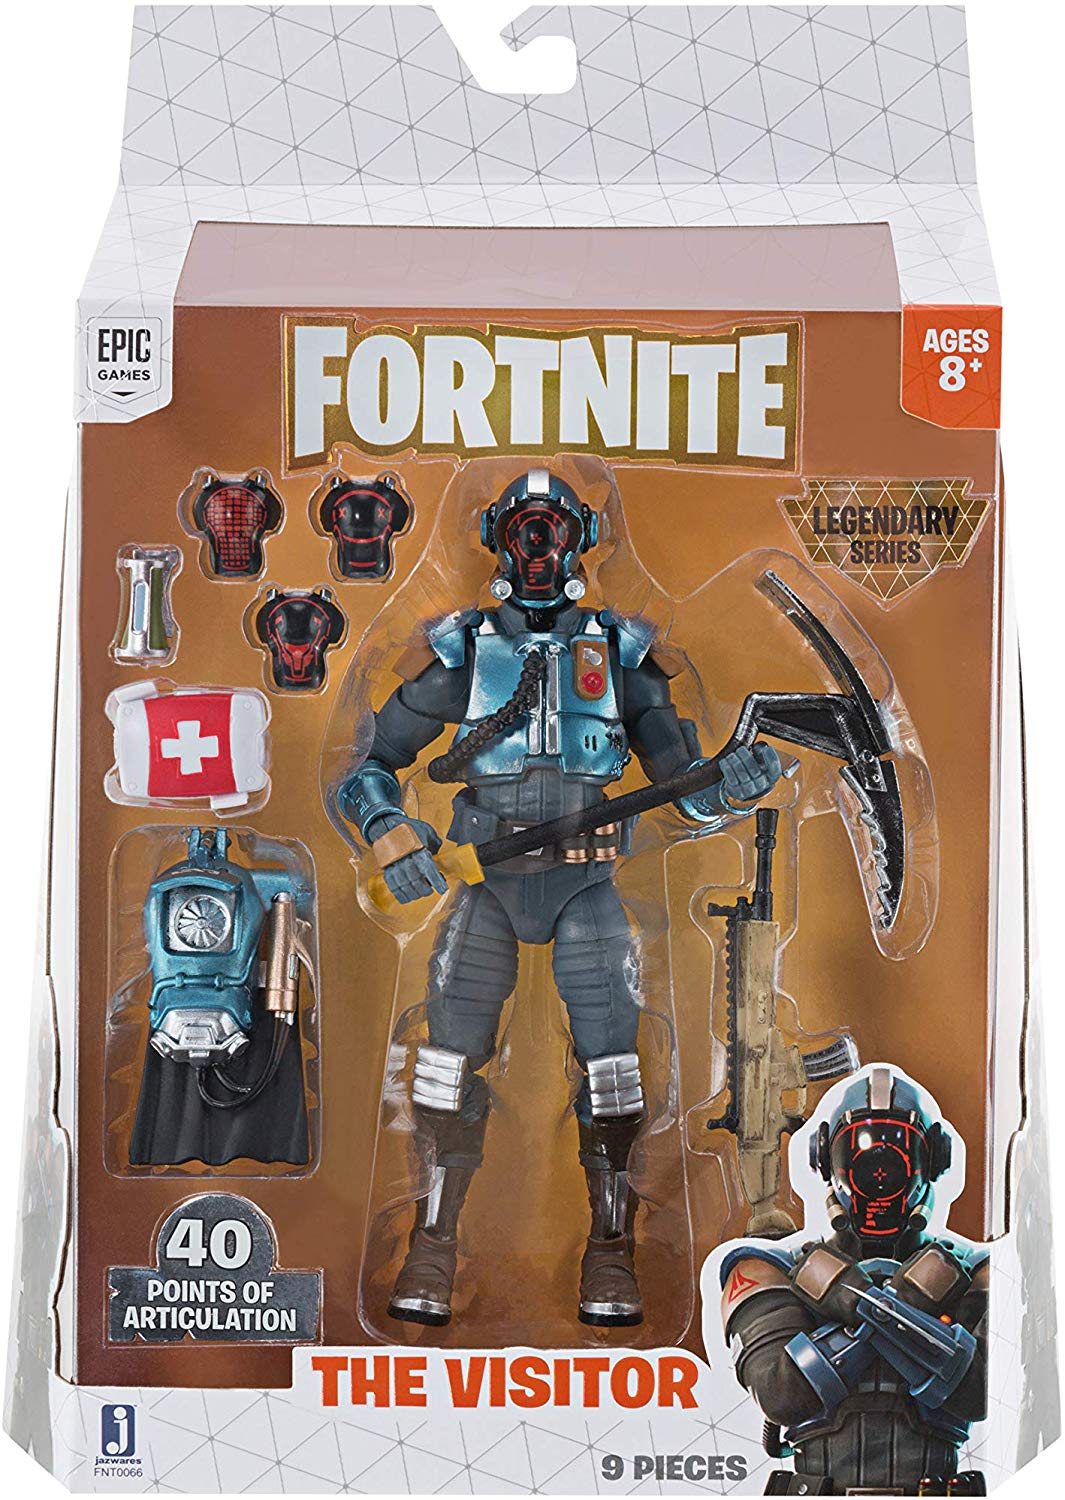 Fortnite Serie Legendária - The Visitor - 15 cm - Original